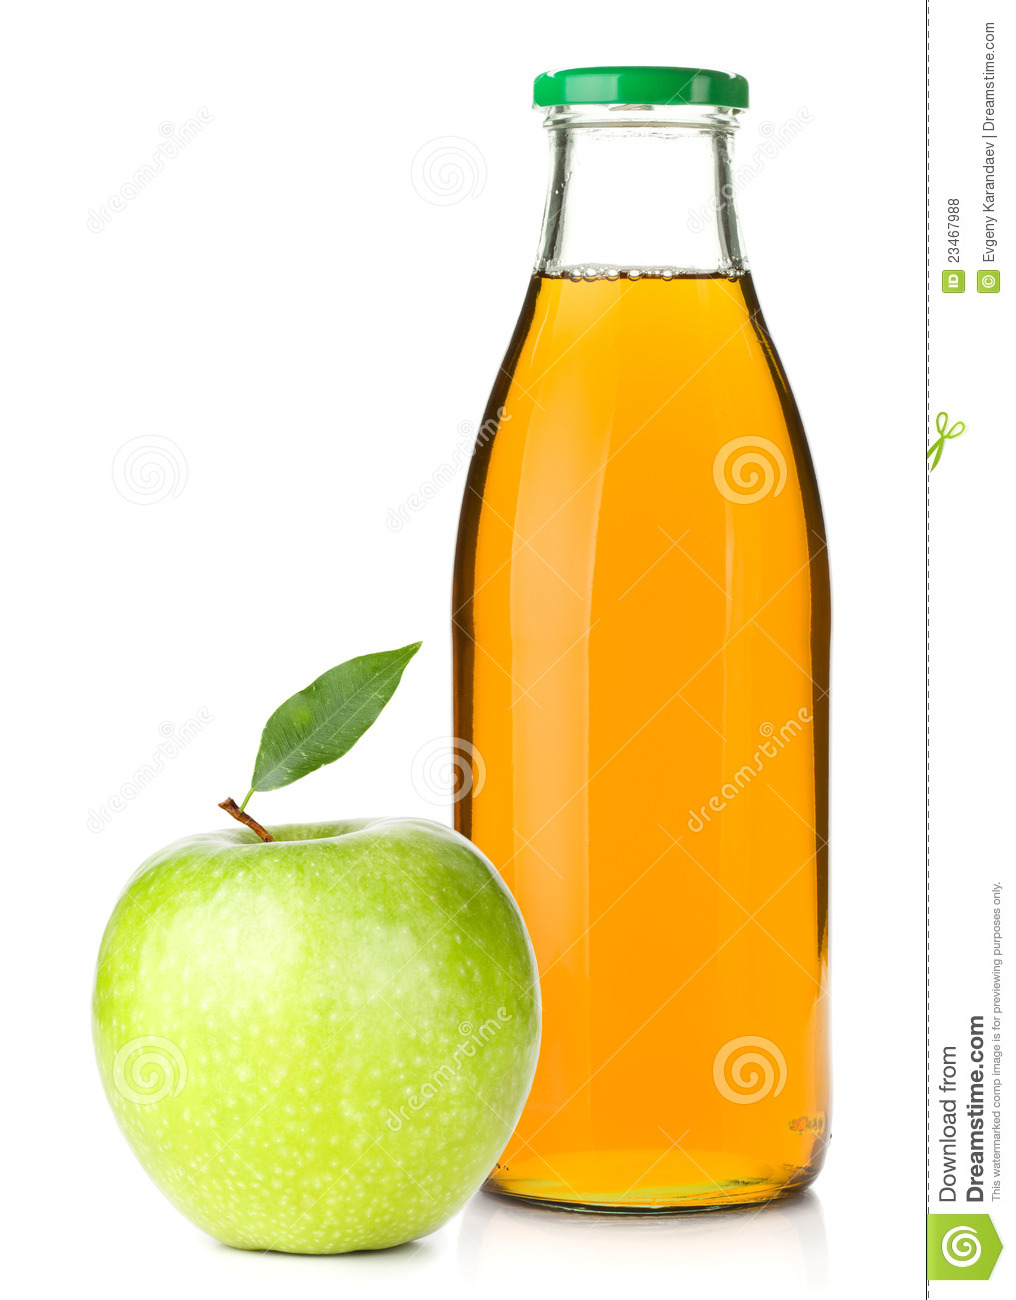 Cartoon Juice Bottle Apple Juice in a Glass Bottle